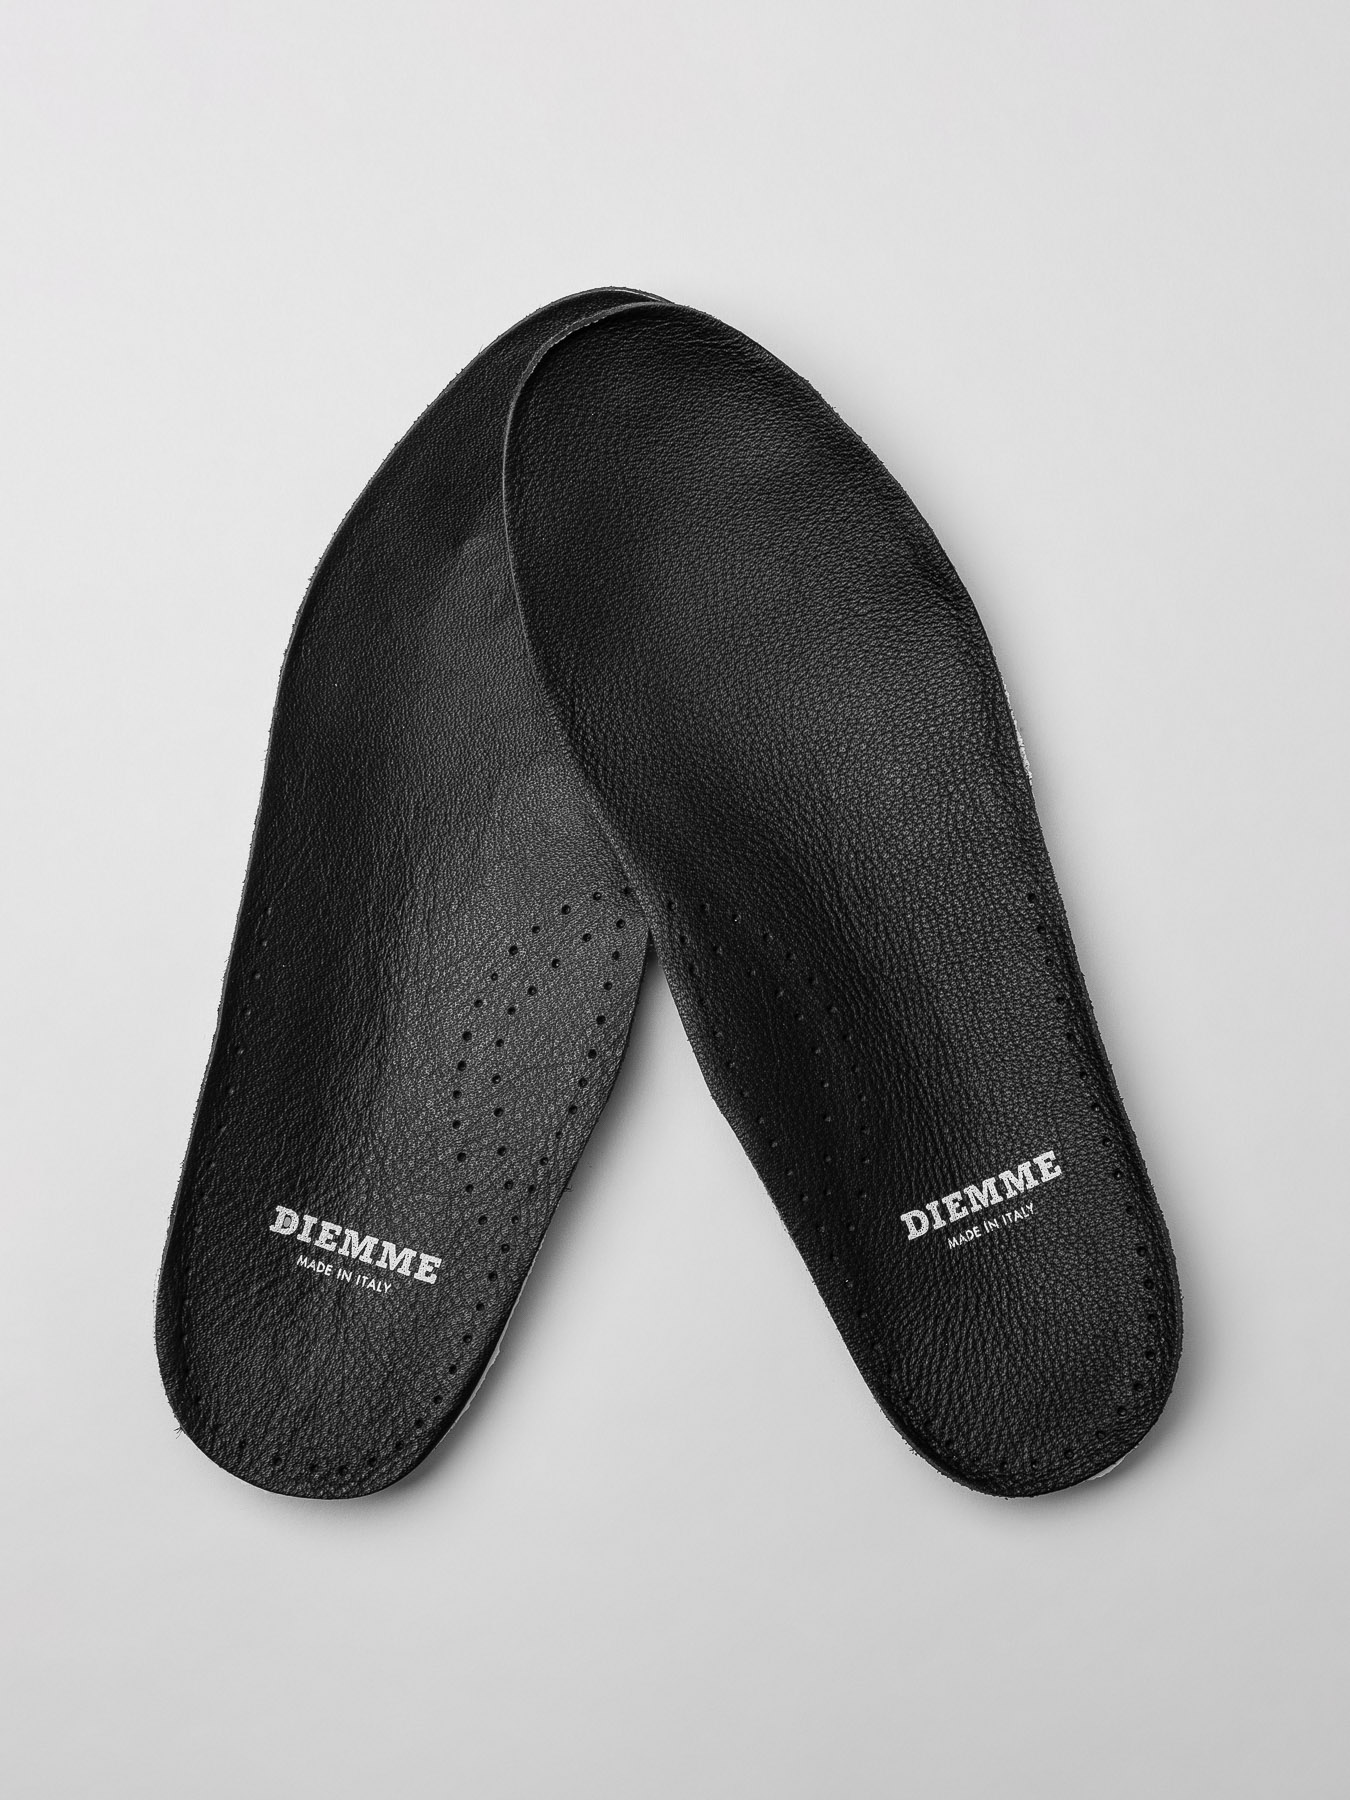 Diemme Black Leather Insoles